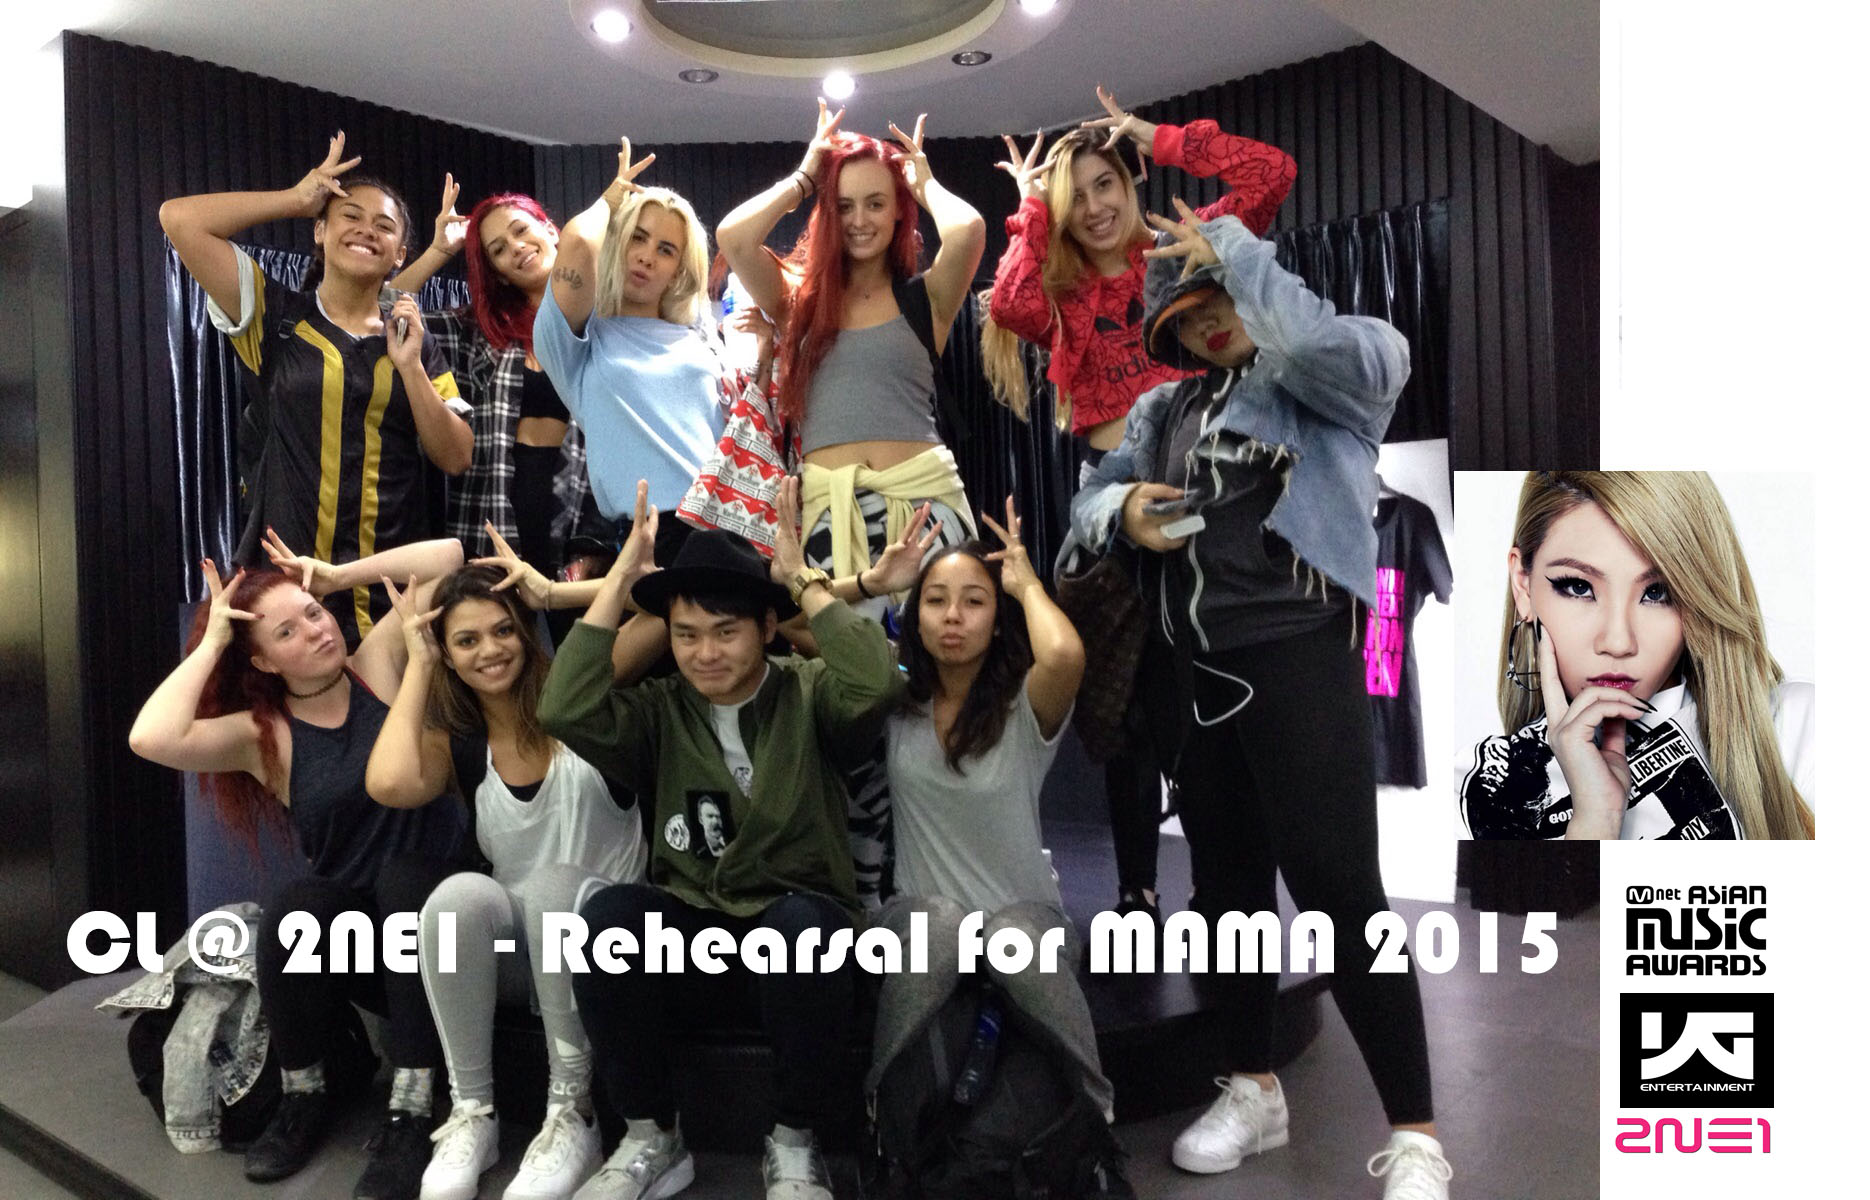 ECL _ 2NE1 - Rehearsal for MAMA 2015